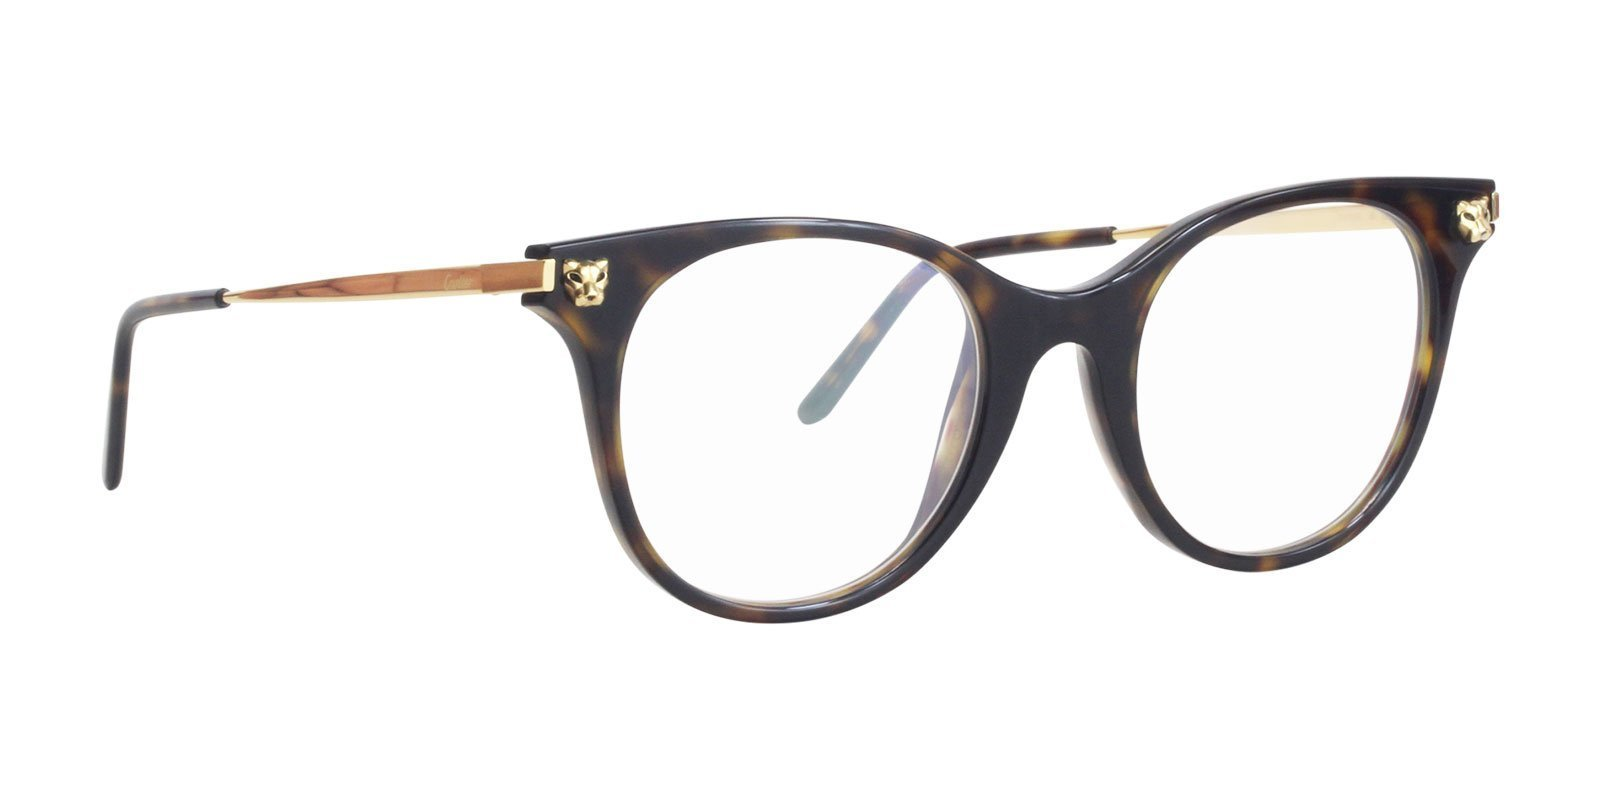 Cartier Panthere Glasses